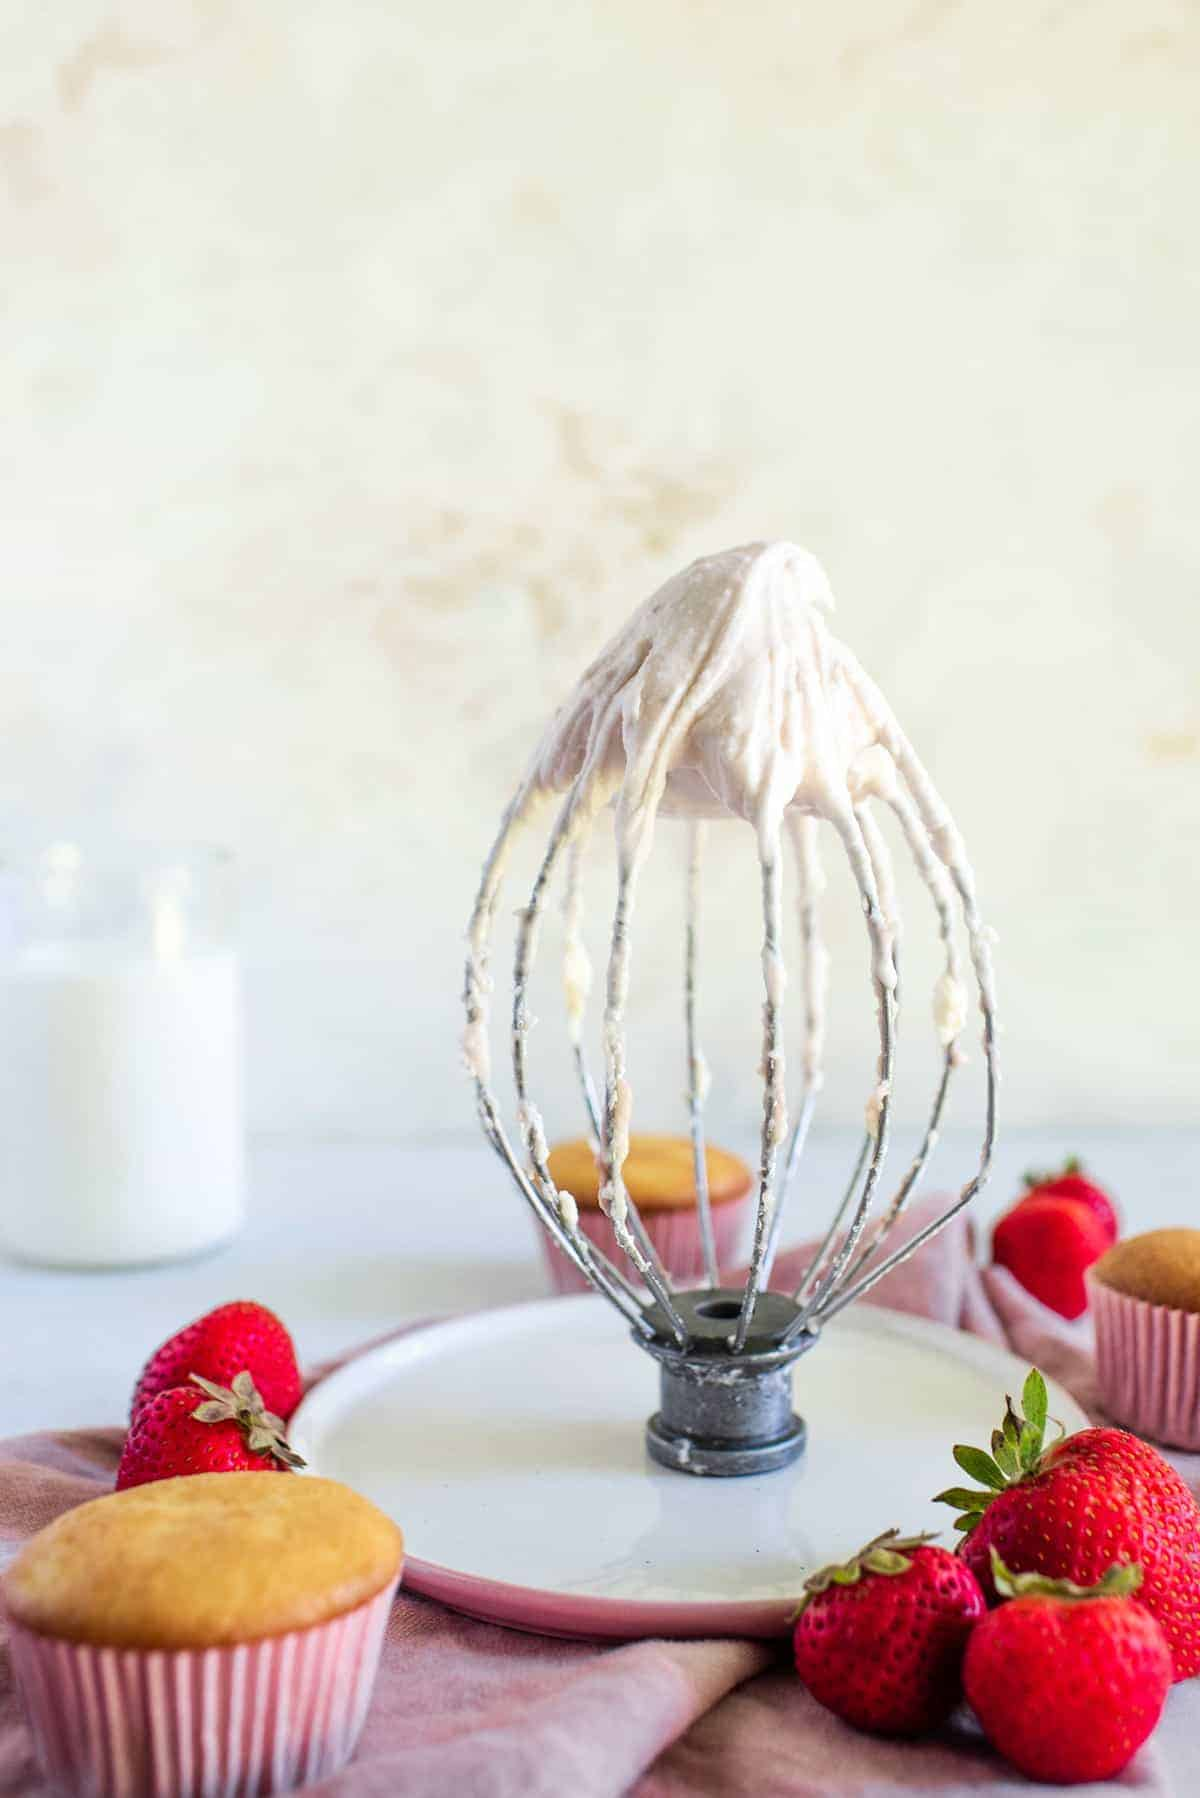 strawberry cream cheese frosting on a whisk